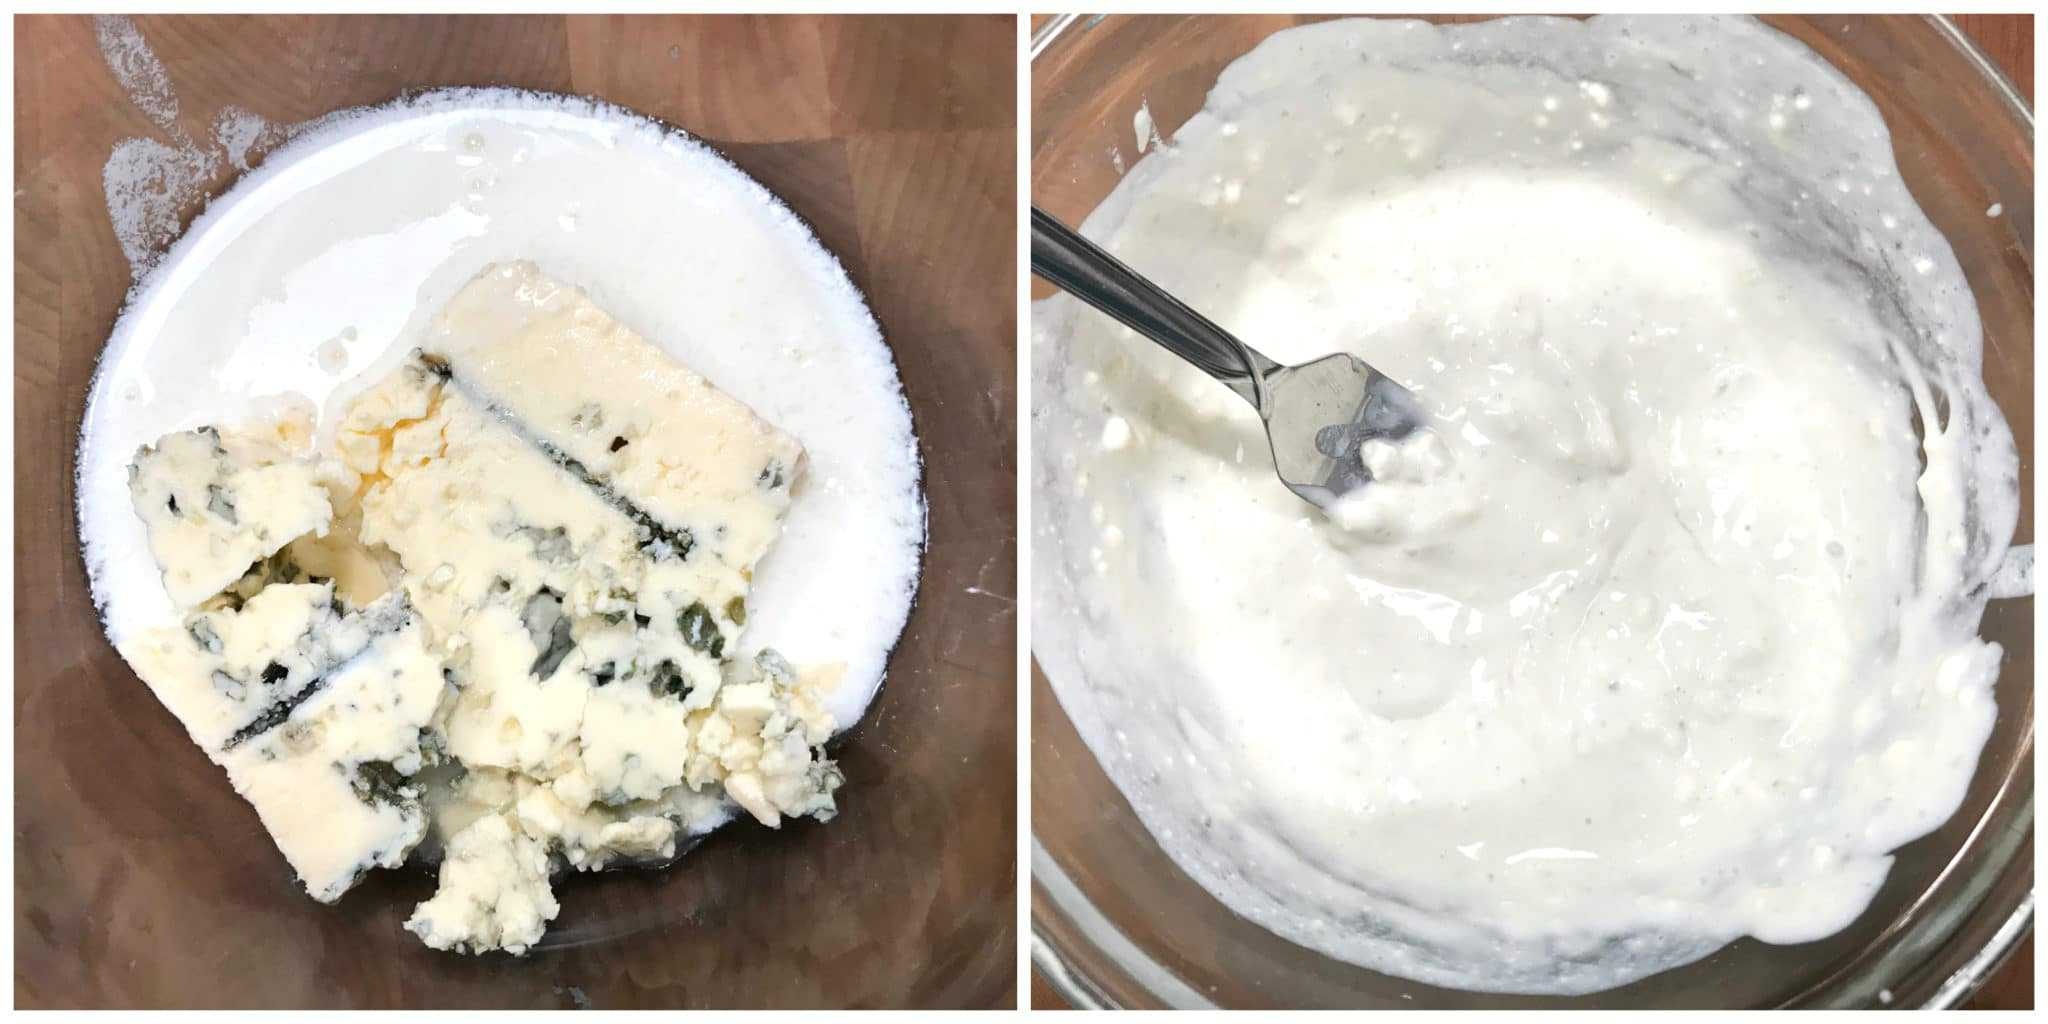 mashing blue cheese and buttermilk to make dressing